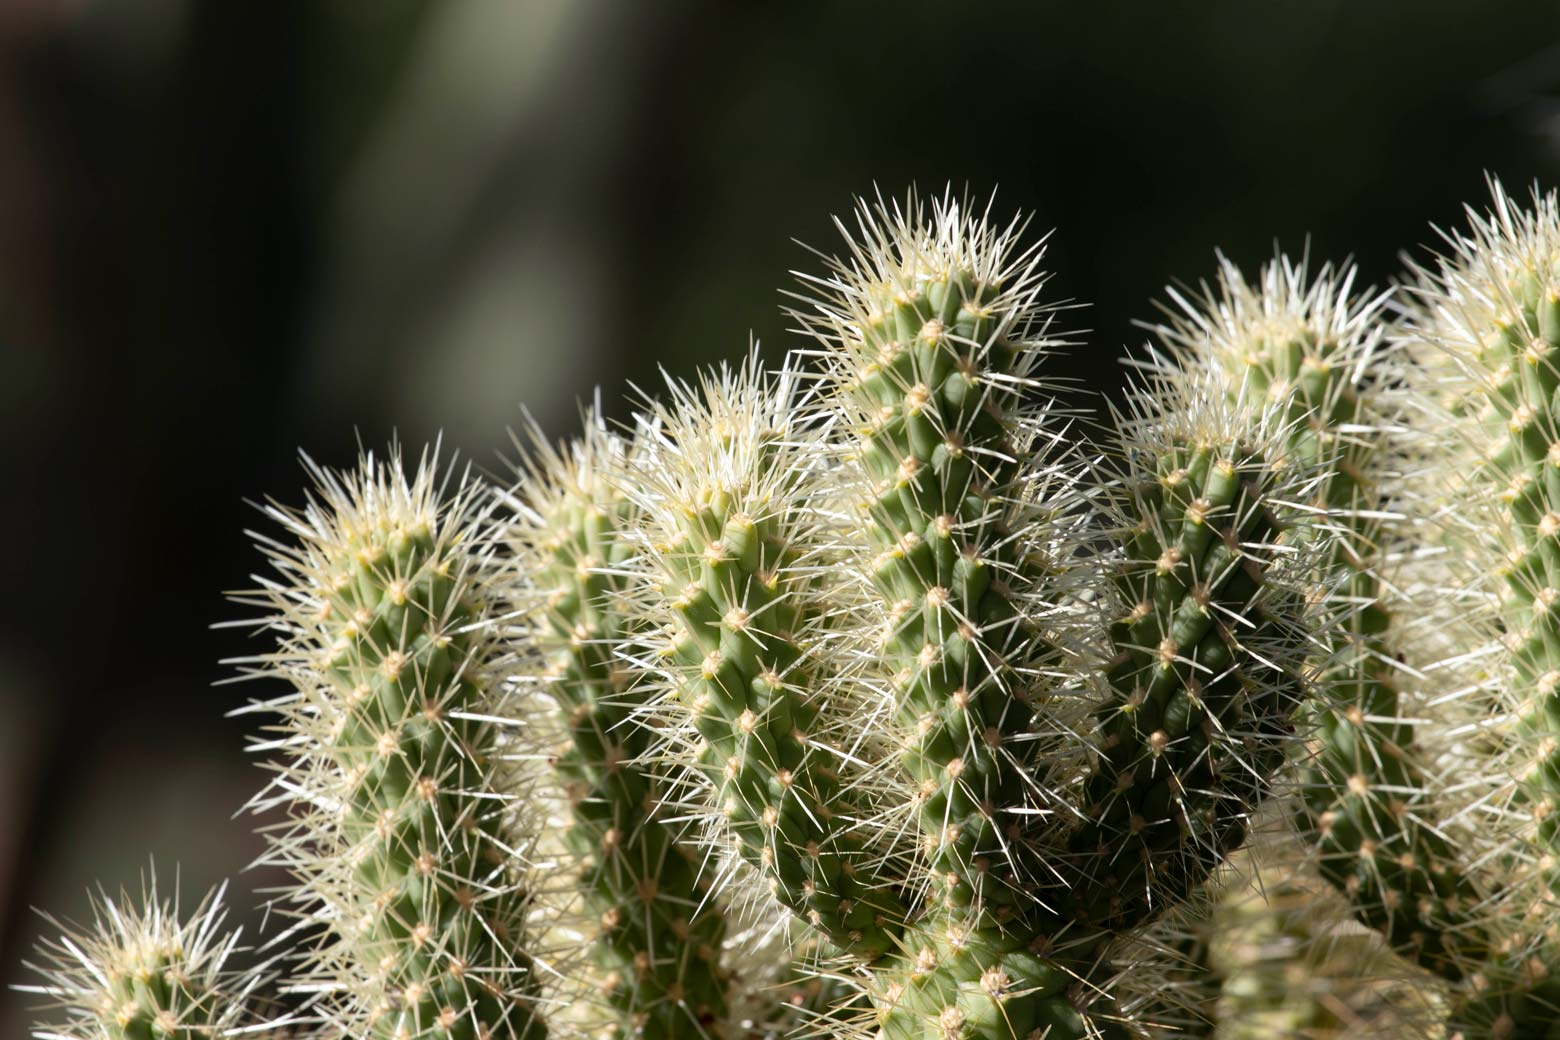 A close-up of the spines of the Teddy Bear Cholla.